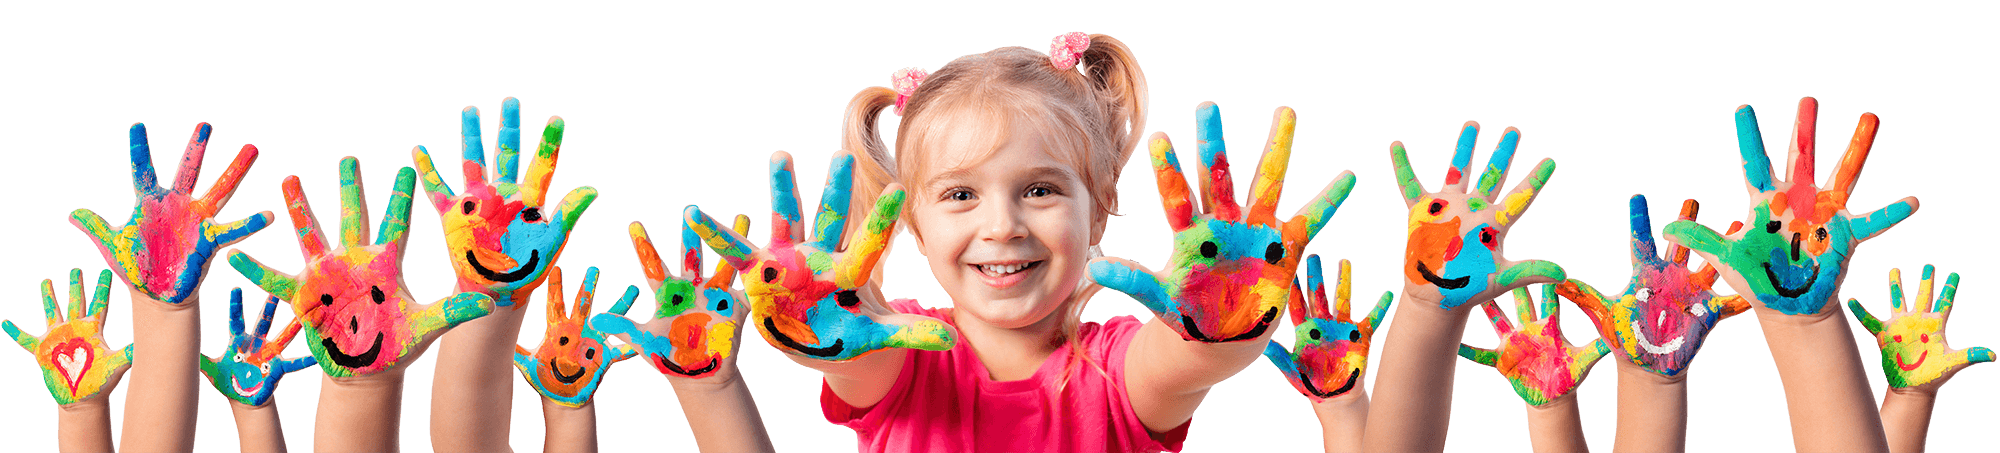 Smiling young girl with paint on her hands